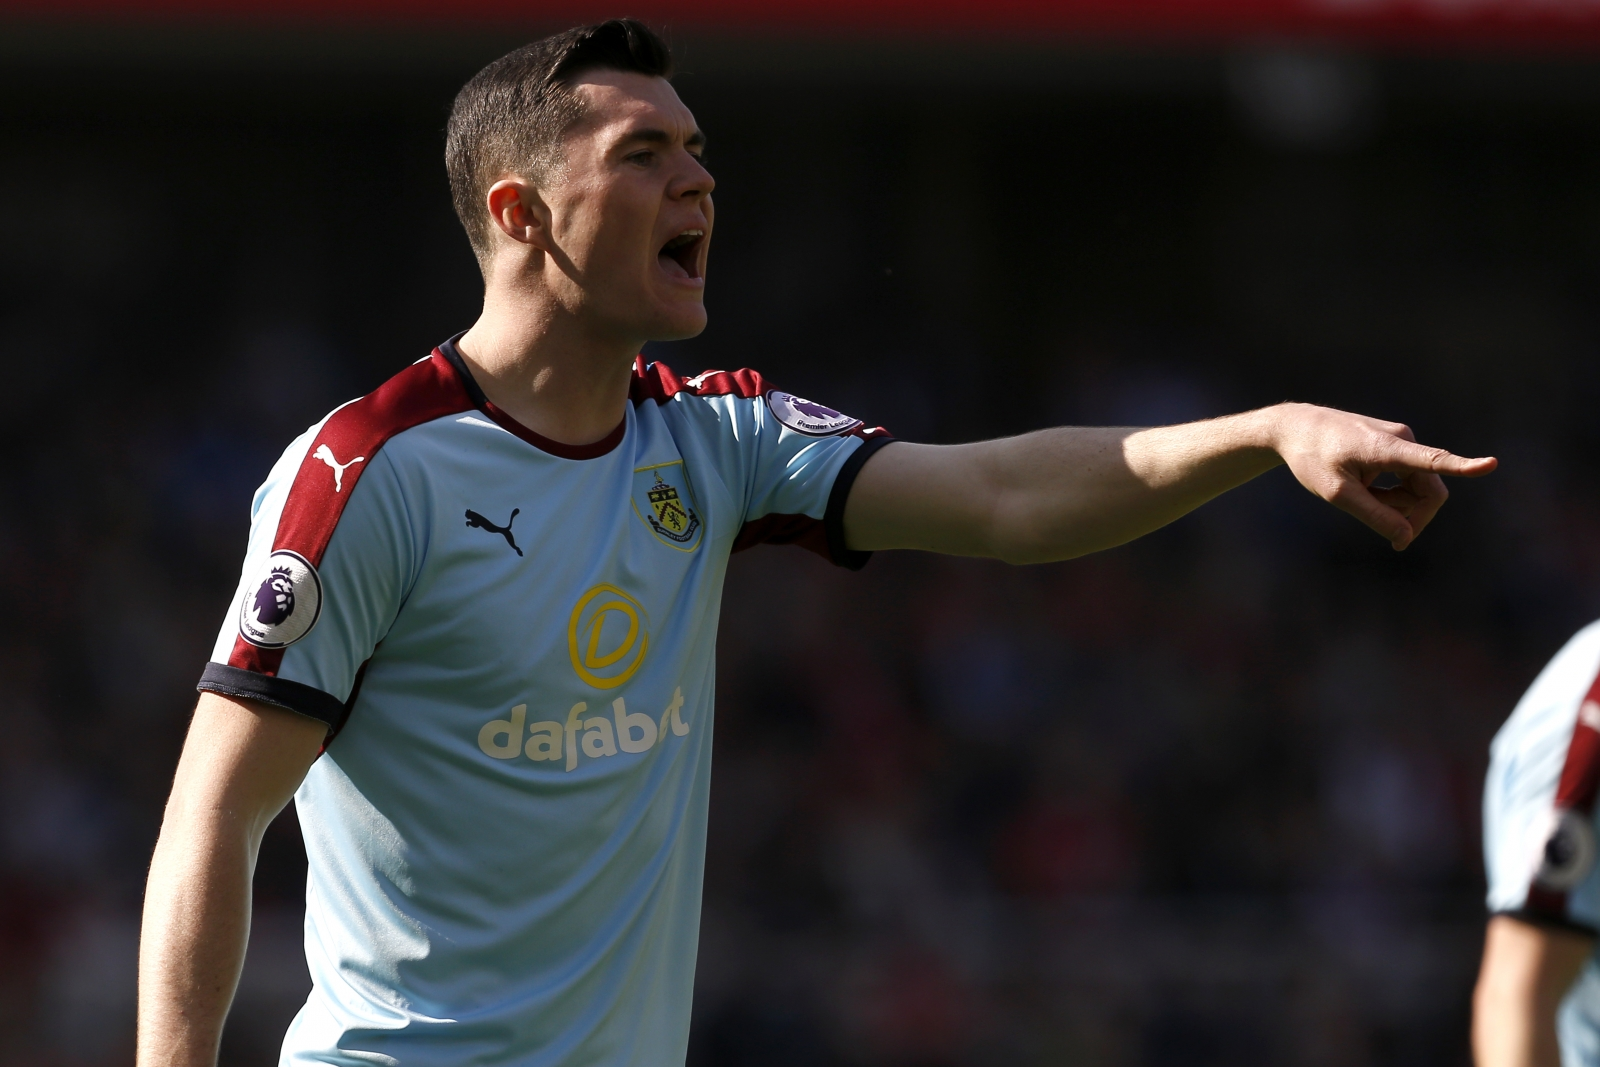 Sean Dyche insists Burnley are under no pressure to sell Michael Keane